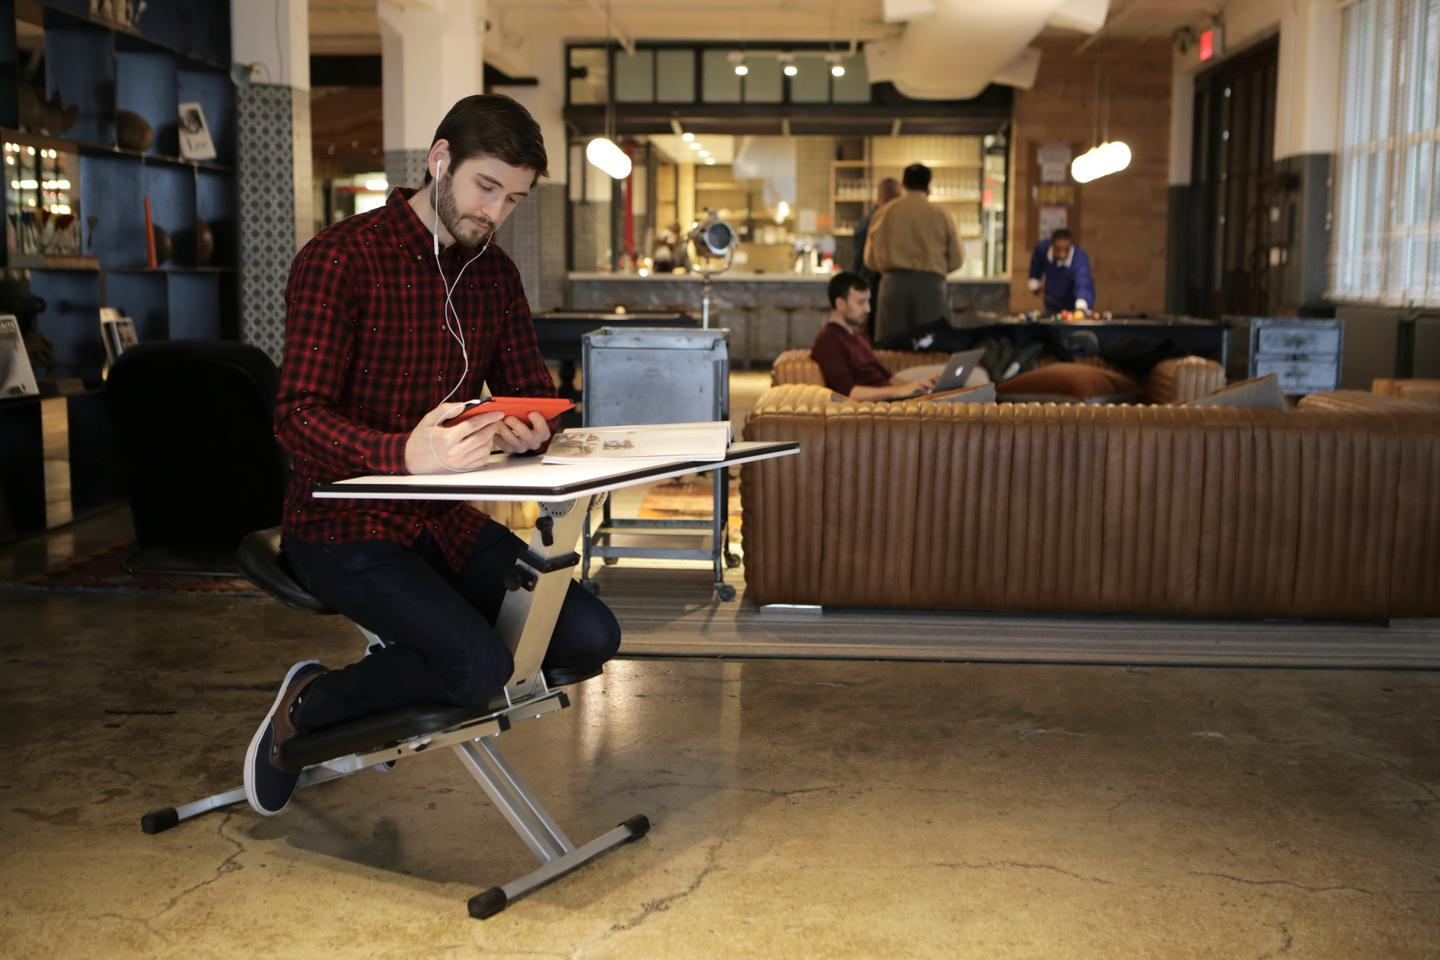 The Edge Desk is ergonomic, adjustable, portable, modular, and (arguably) affordable